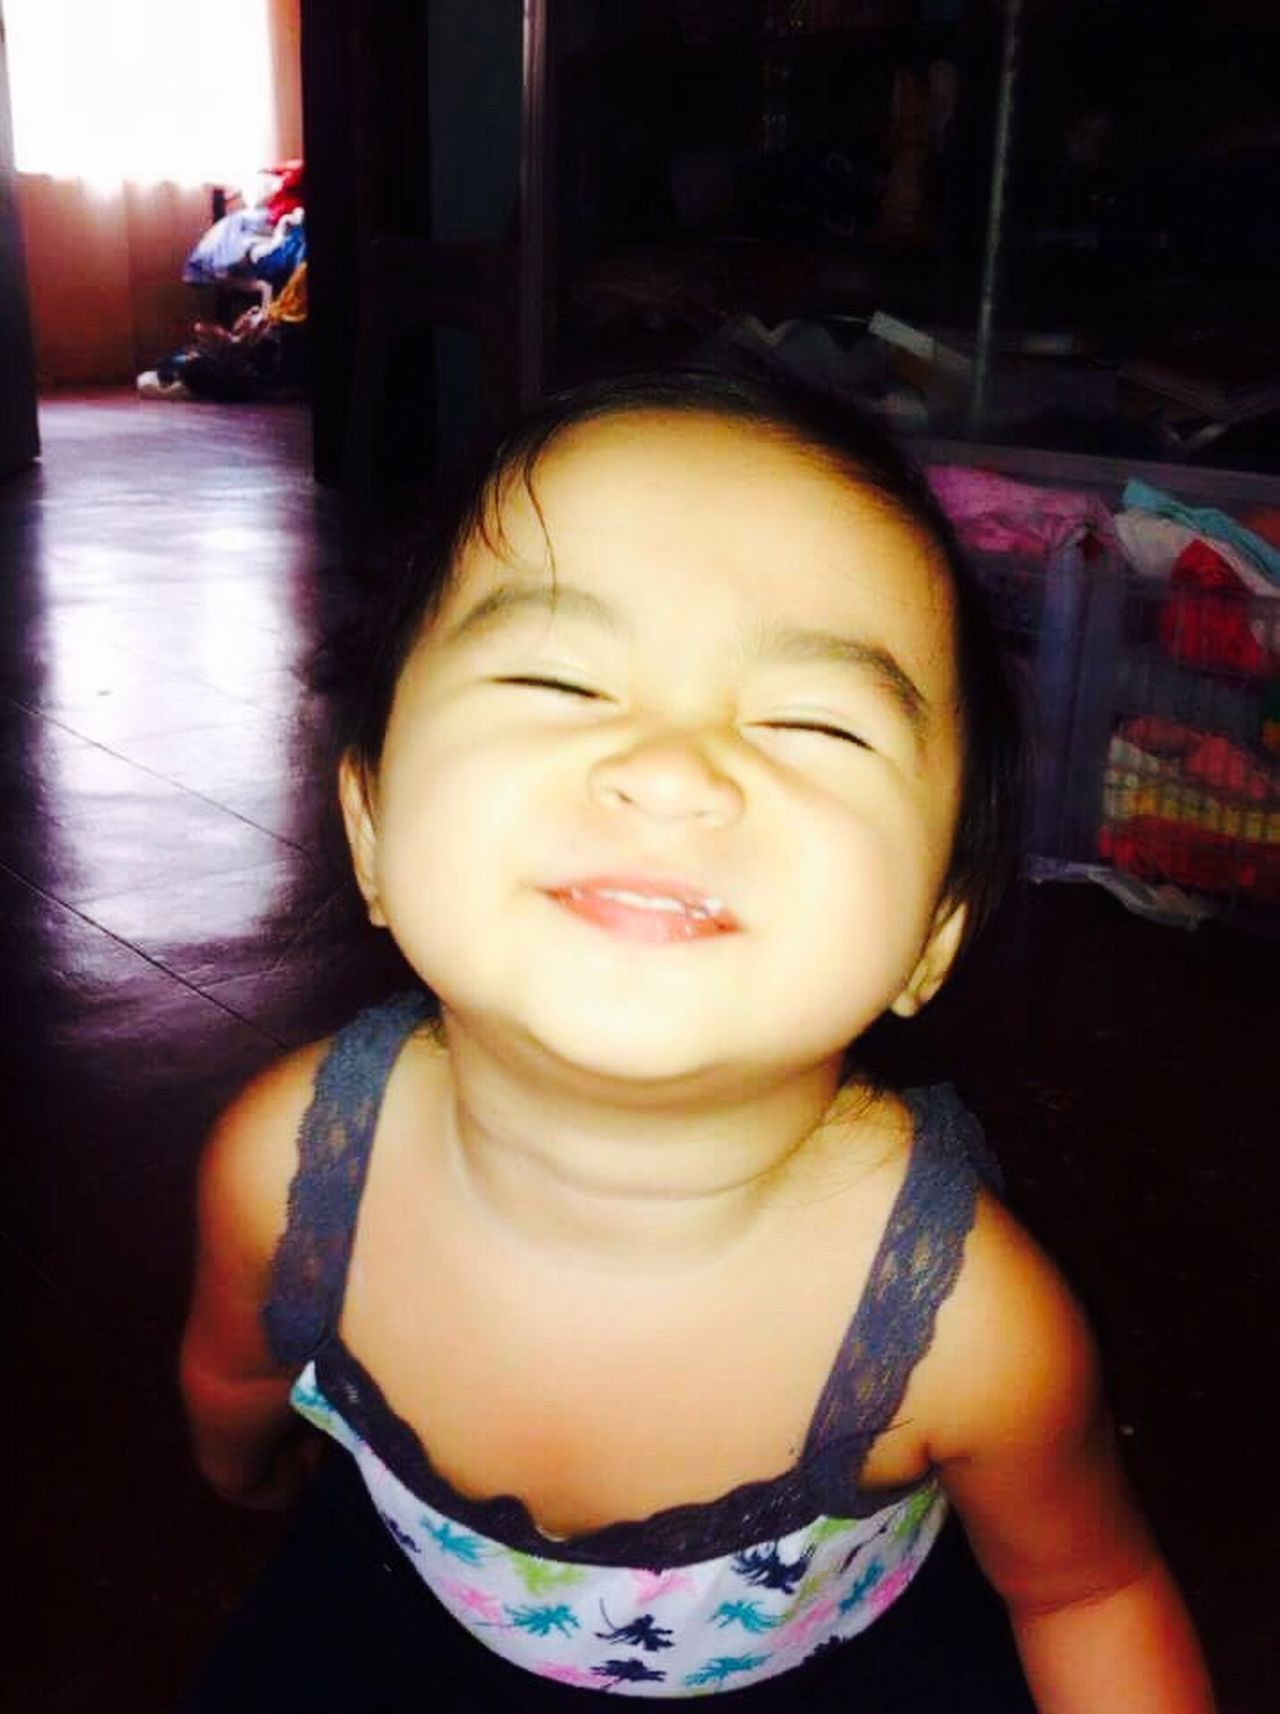 Laugher Babygirl Stressreliever Simple Moment Daughterlove Priceless Tenderness Eyes Closed  Lovely Lovelovelove